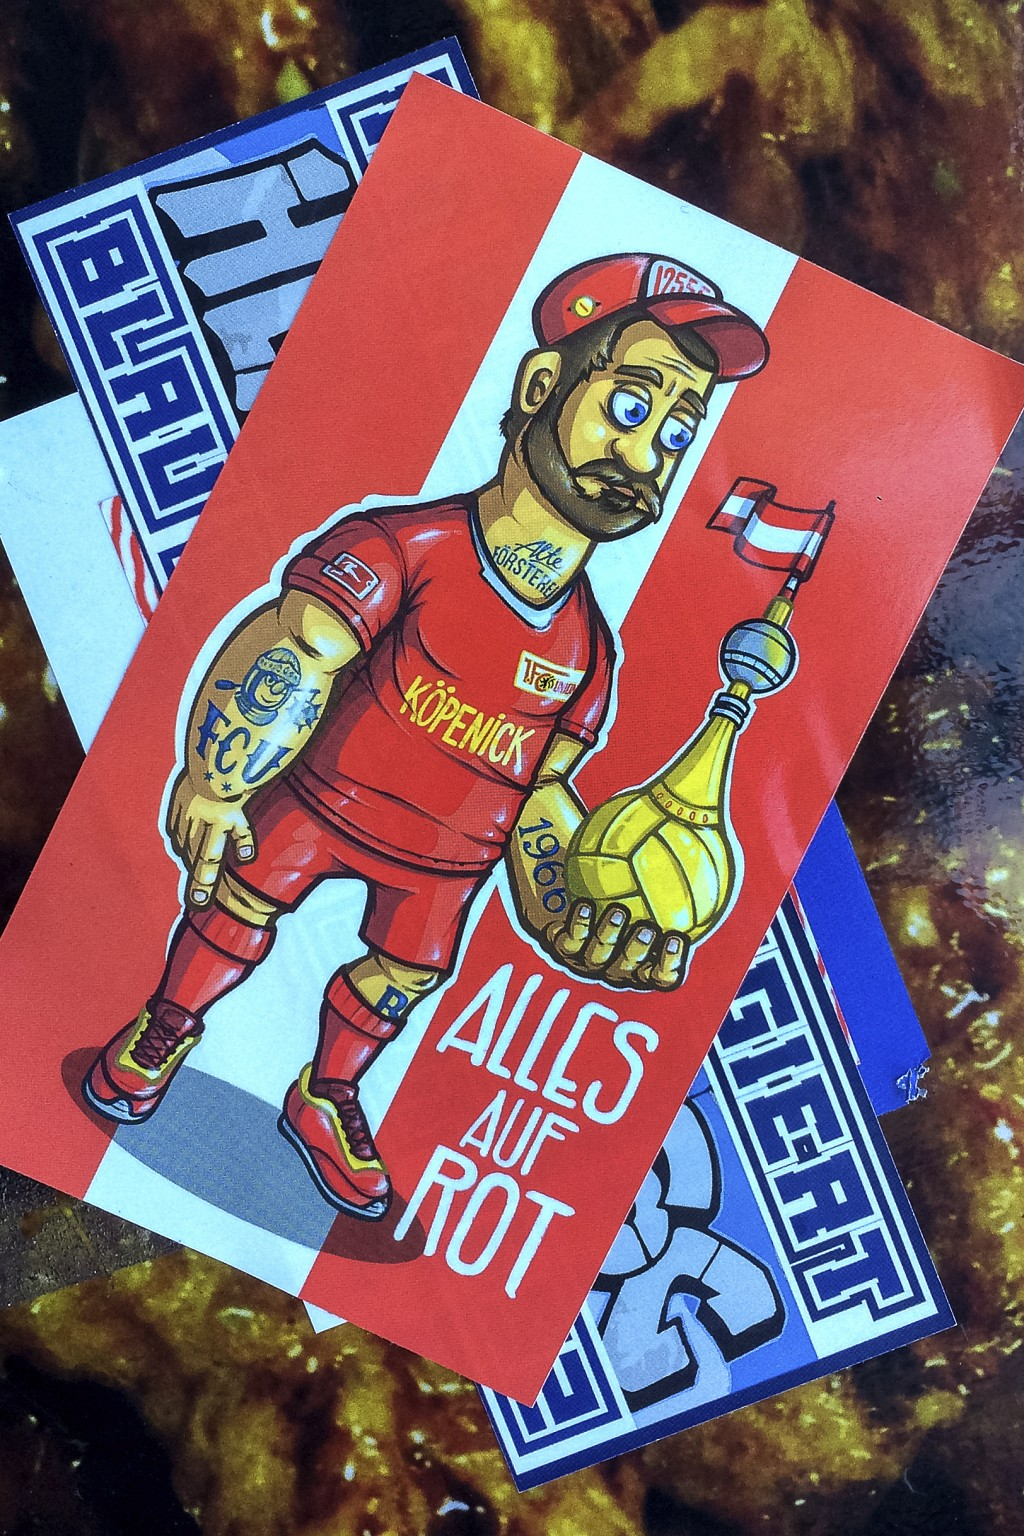 Stickers of the German first divsion, Bundesliga, soccer teams Hertha BSC Berlin and 1.FC Union Berlin are pictured in Berlin, Germany, Tuesday, March...